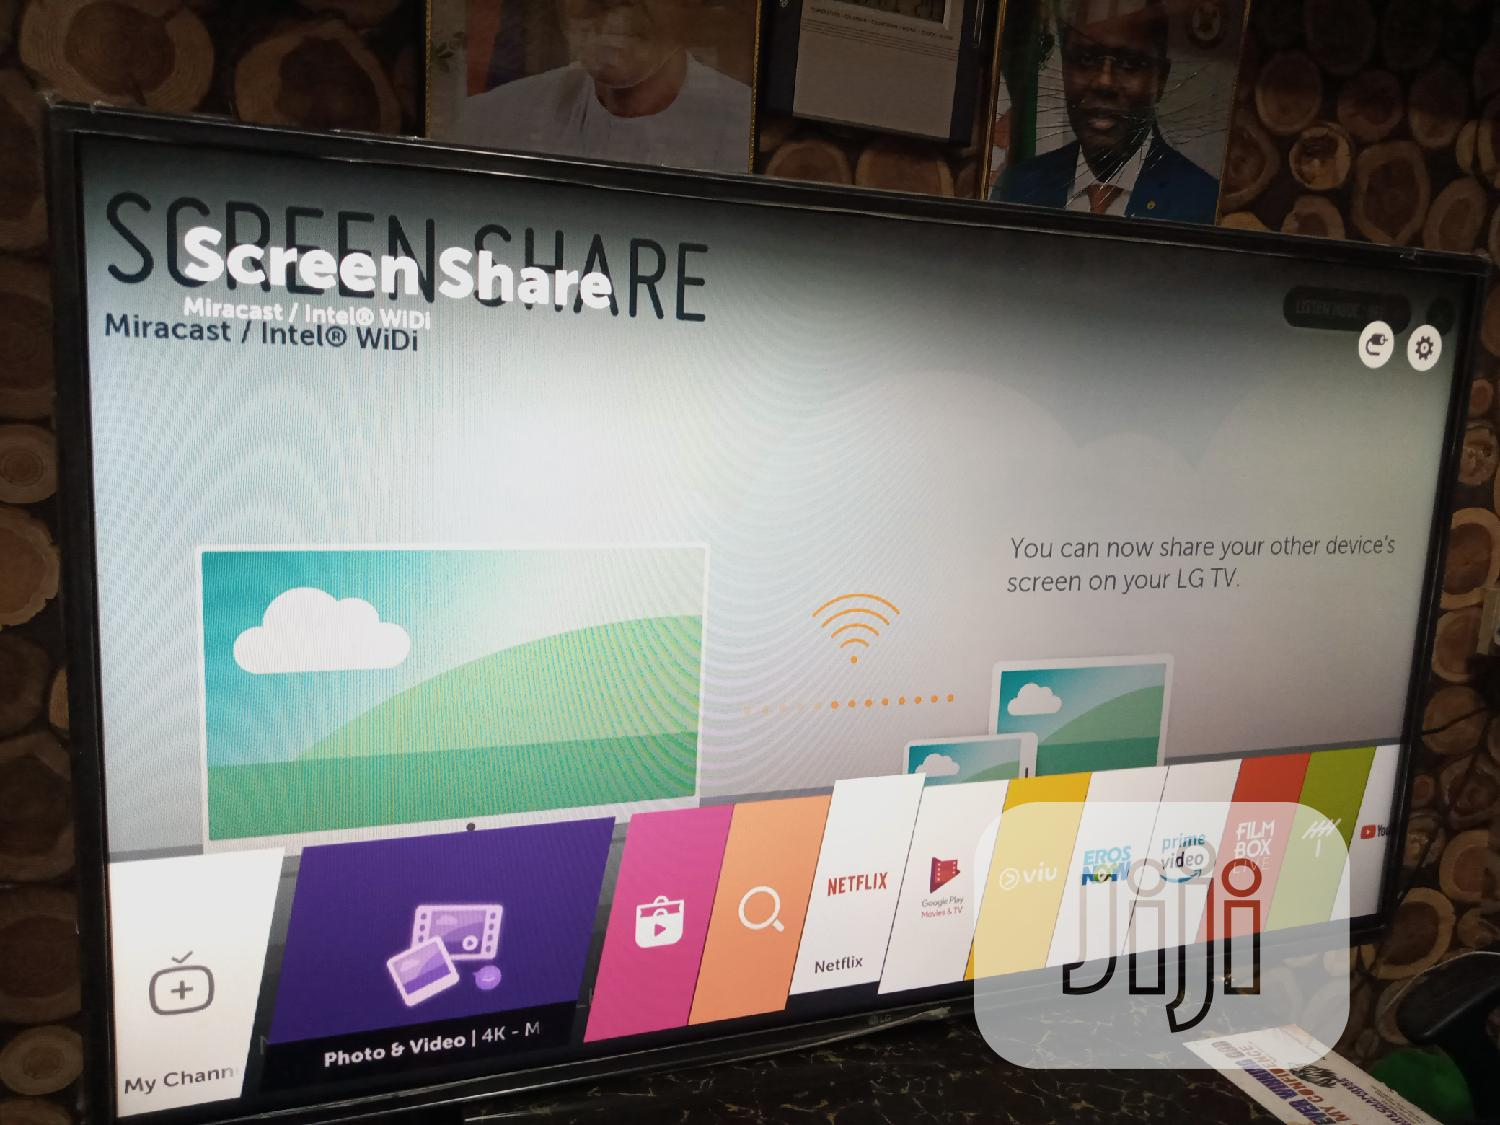 UK Fairly Used 43 Inches LG FULL HD Smart Tv With Mirror Share | TV & DVD Equipment for sale in Ikeja, Lagos State, Nigeria